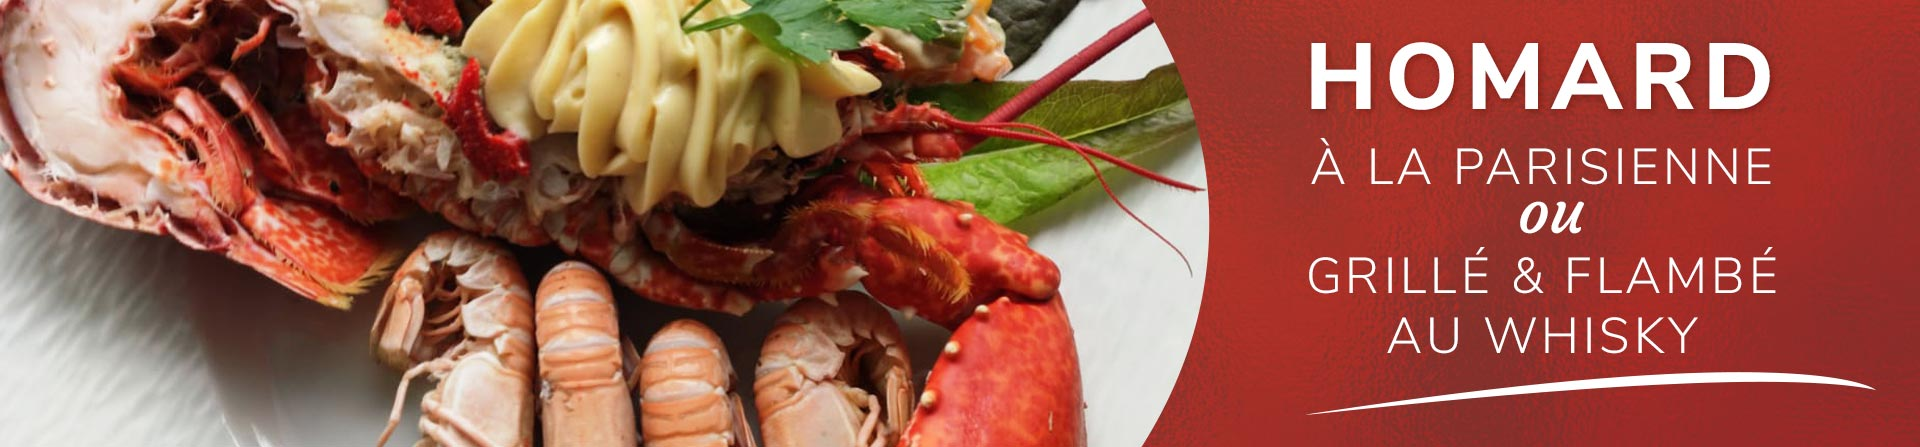 restaurant-martinet-menu-homard